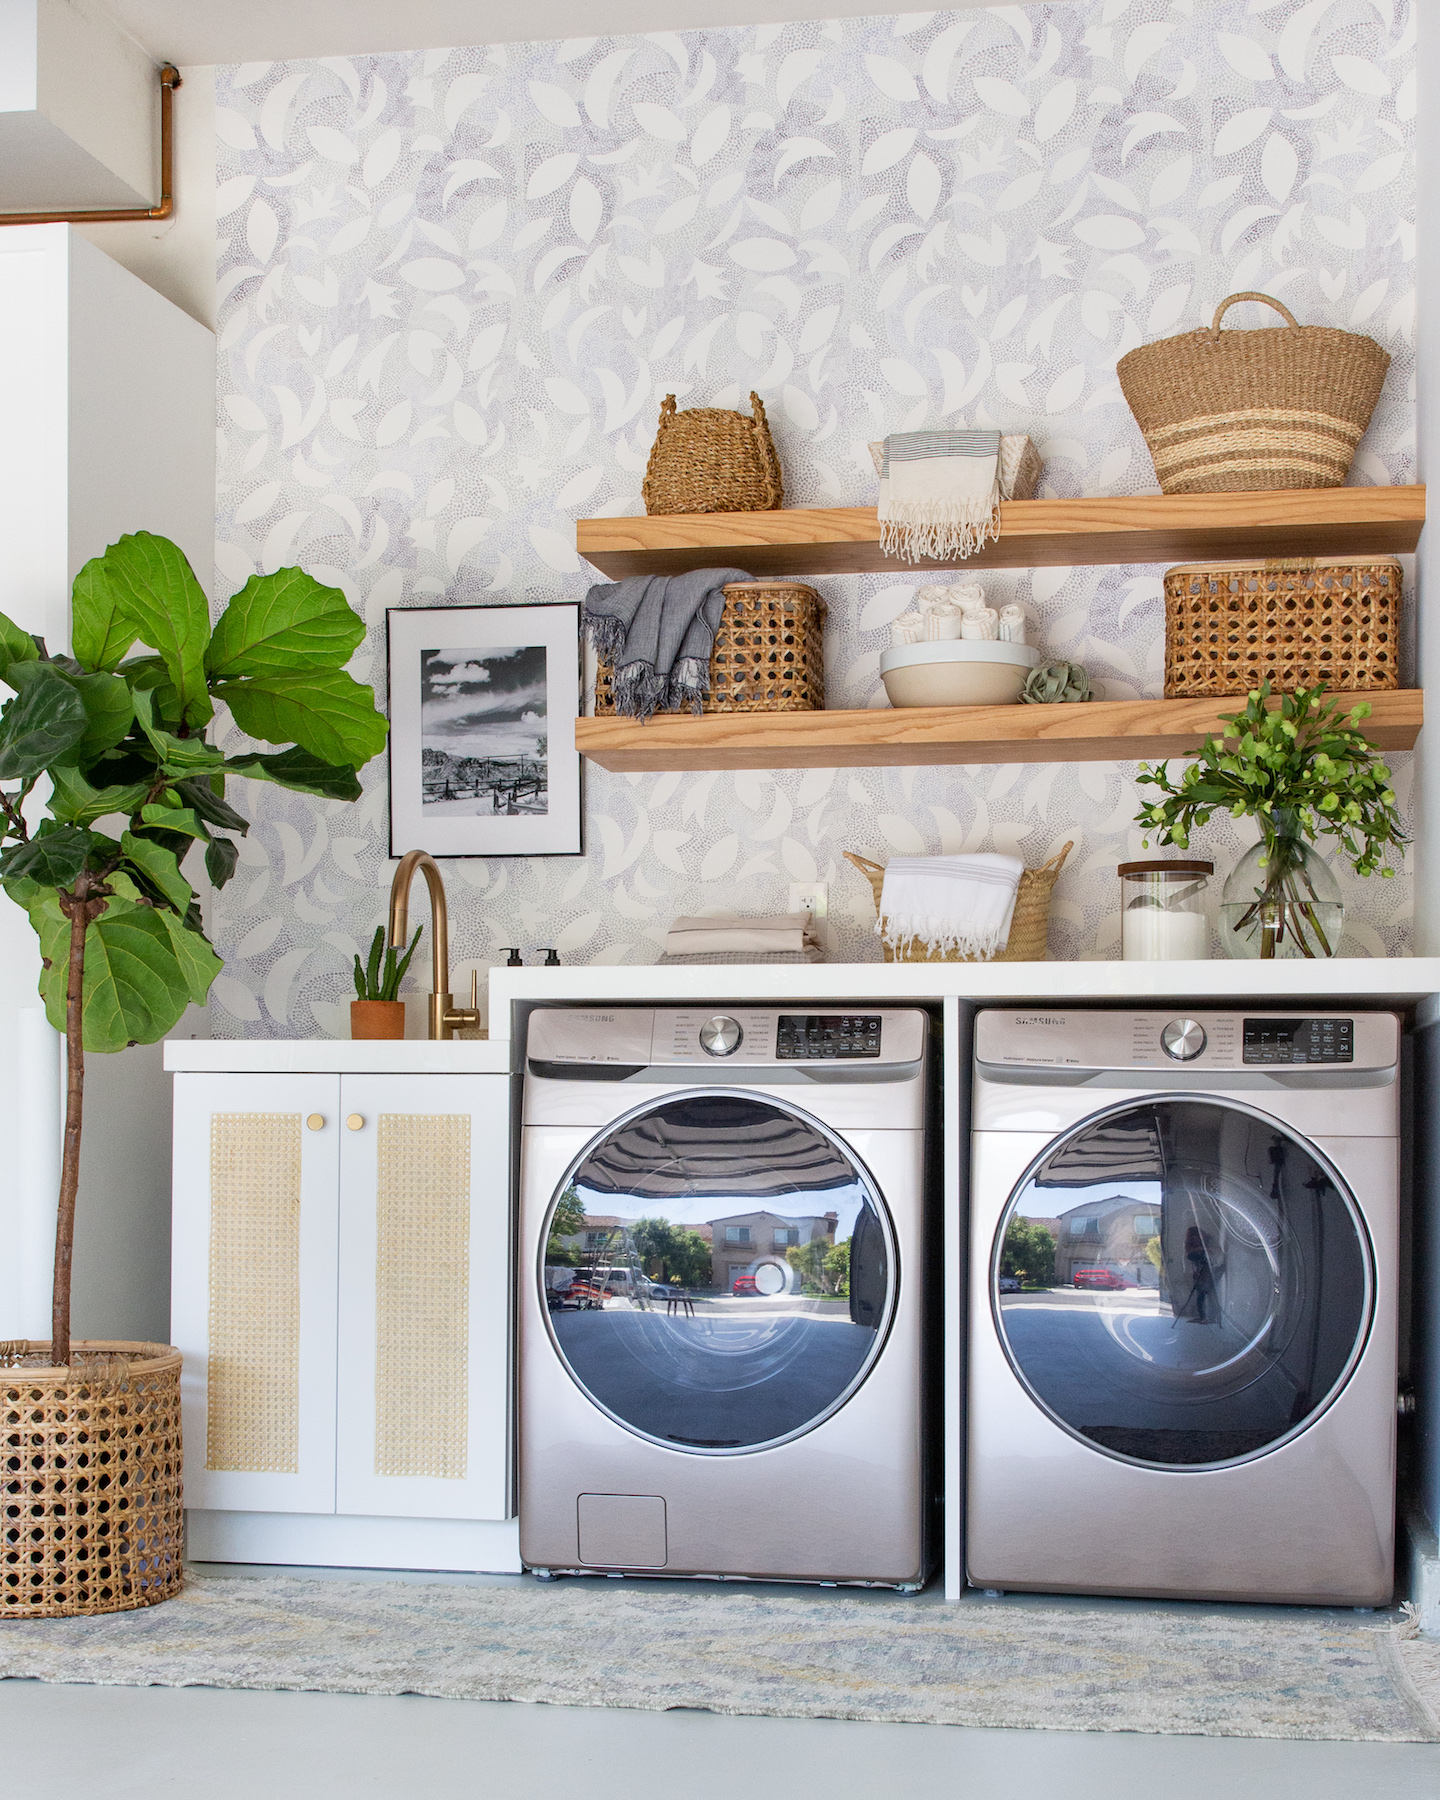 Design Ideas From A Gorgeous Garage Turned Laundry Room